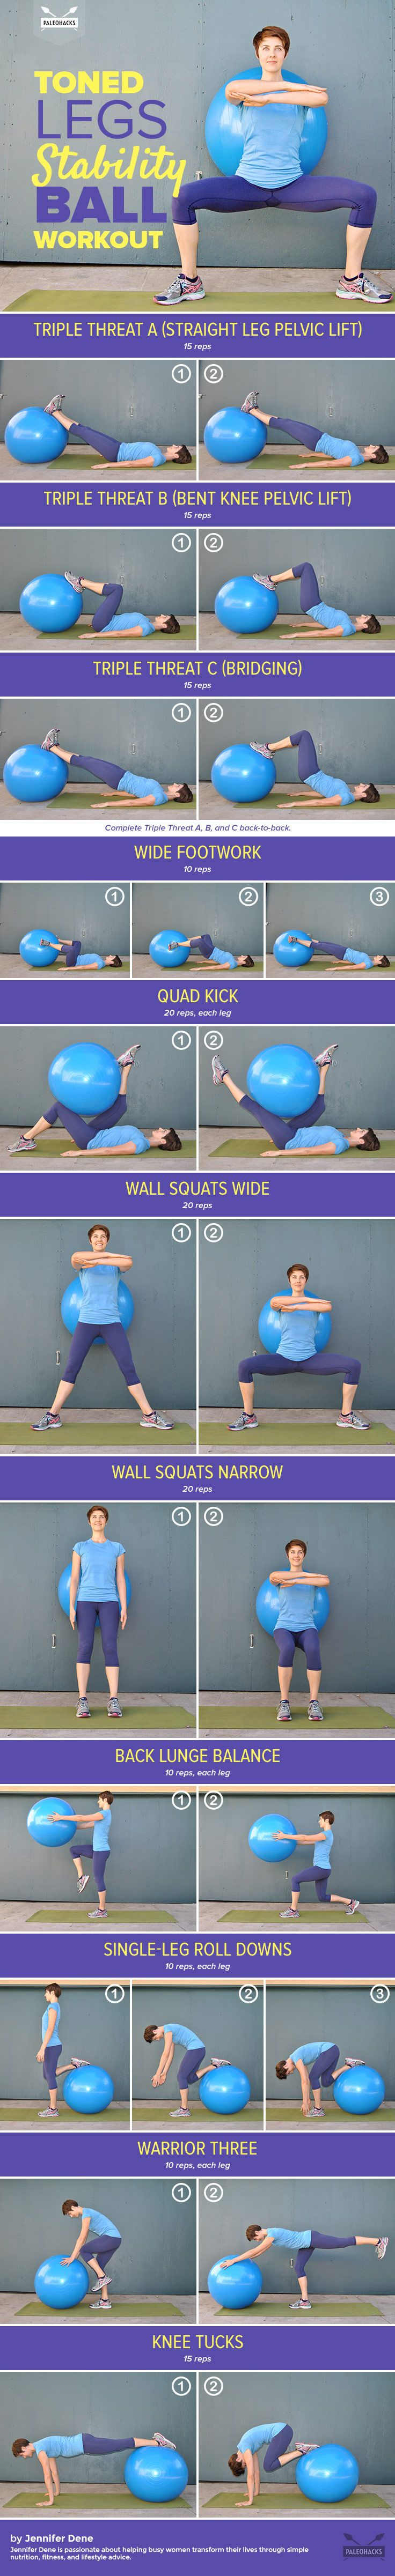 Looking for a challenging workout that will tone your legs and strengthen your core, but is also gentle on your joints? This leg-toning stability ball workout has got you covered. For the full workout, visit us here: http://paleo.co/tonedlegsworkout